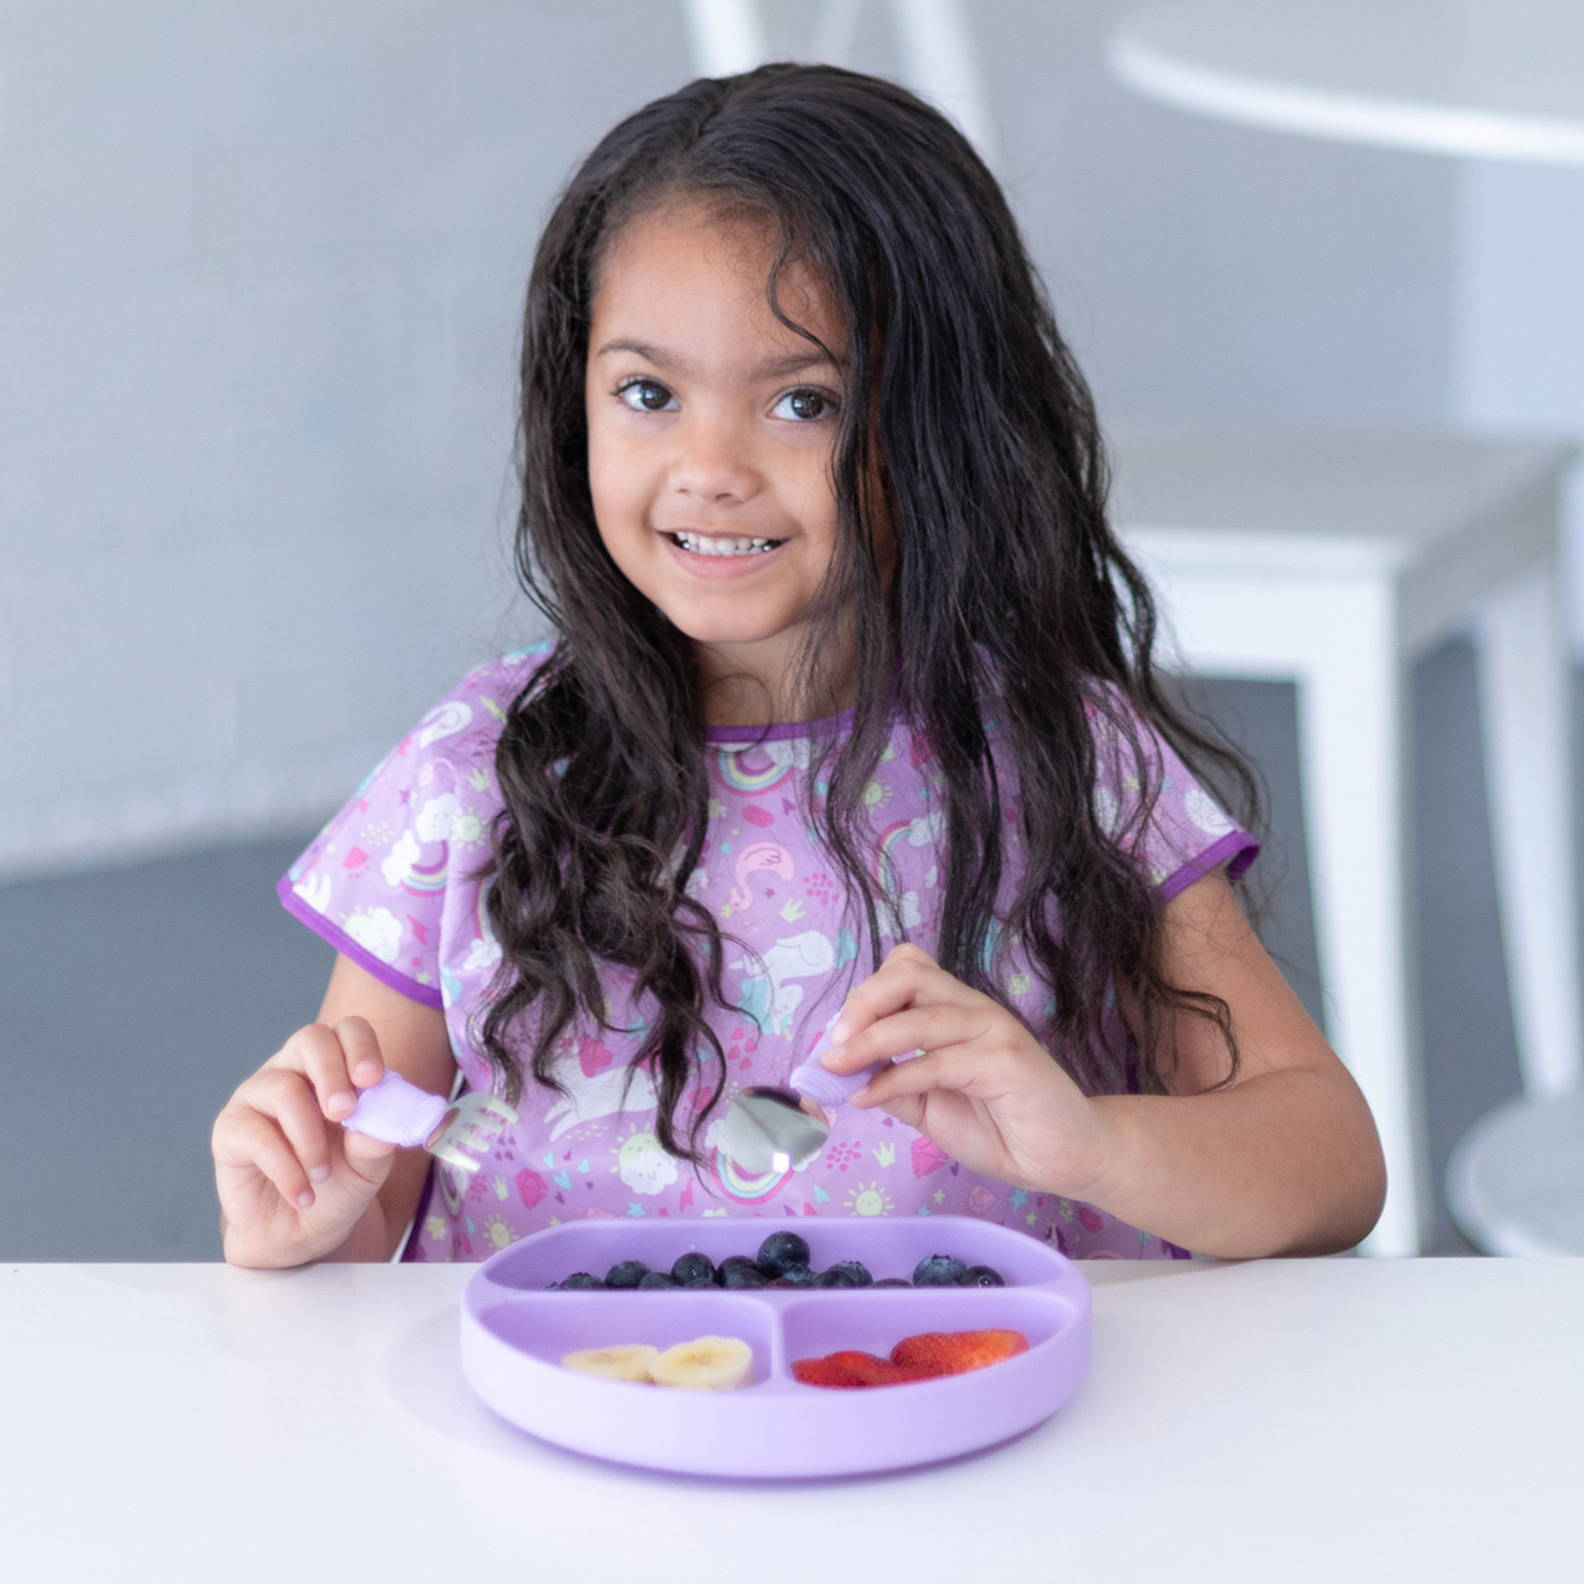 kid wearing bib eating from purple suction dish with utensils